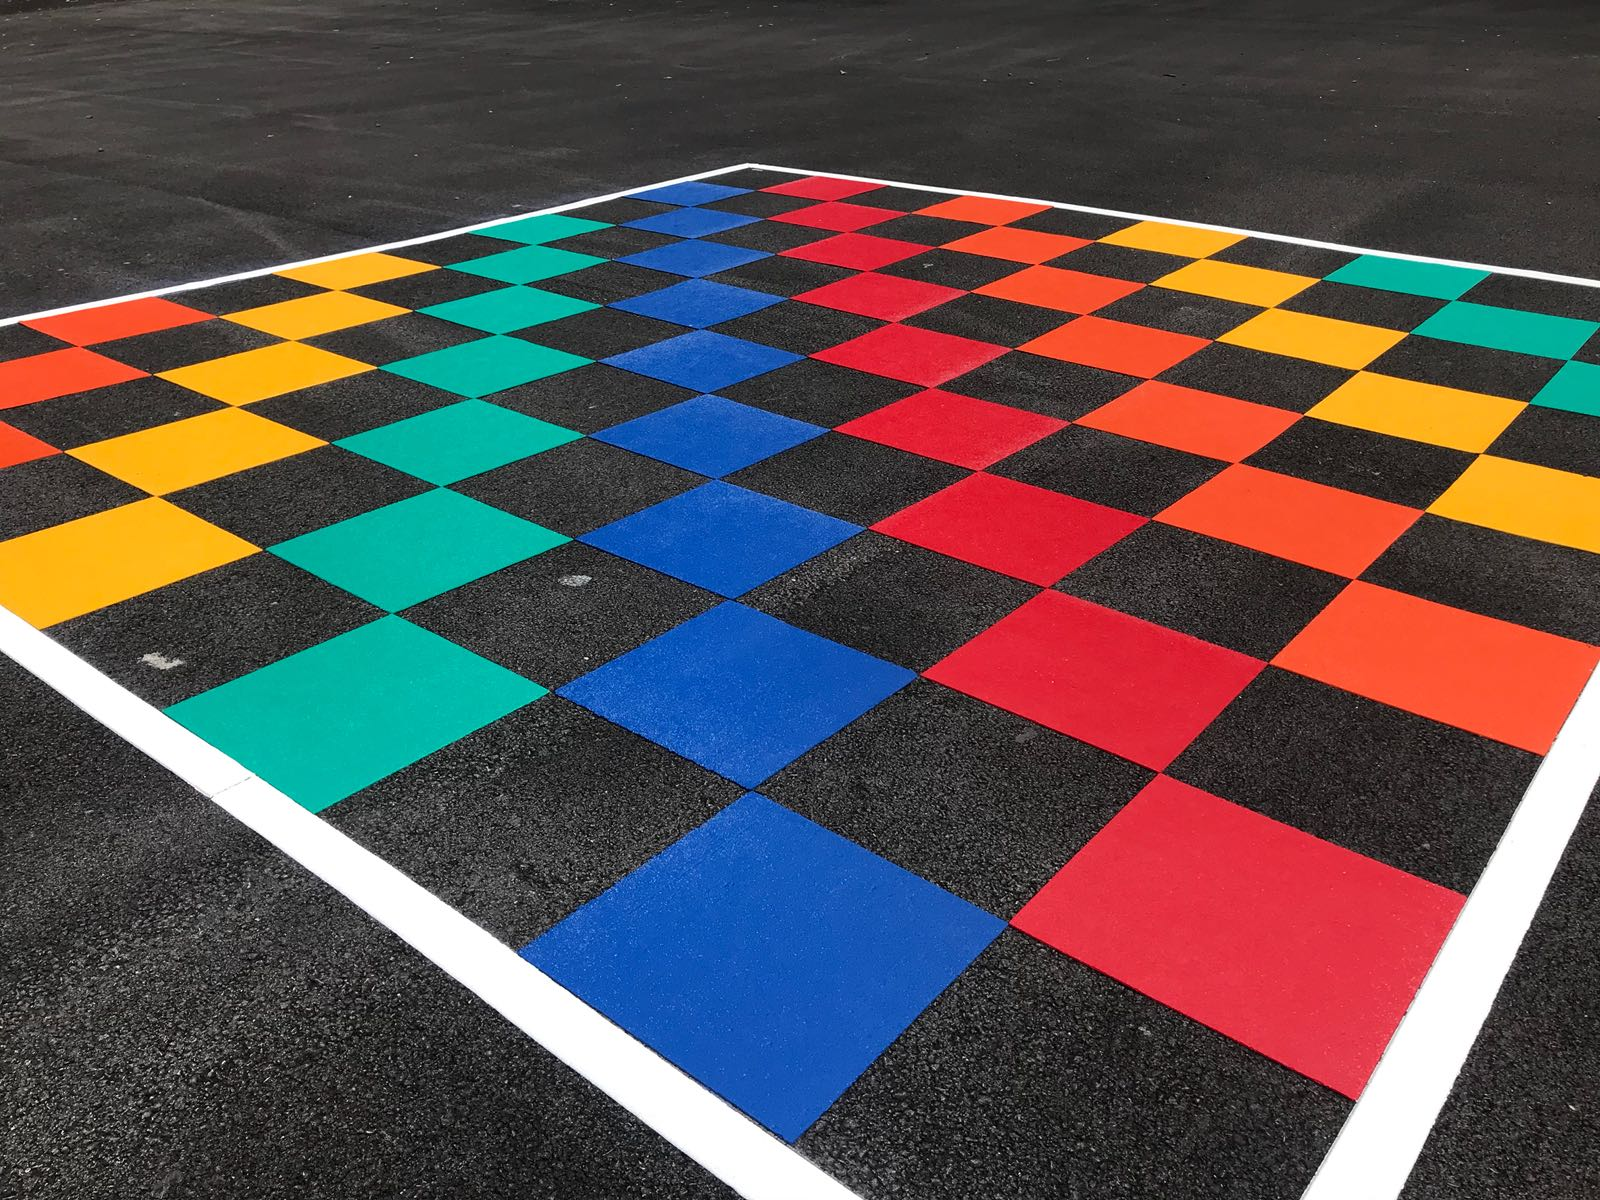 chess-games-markings-1